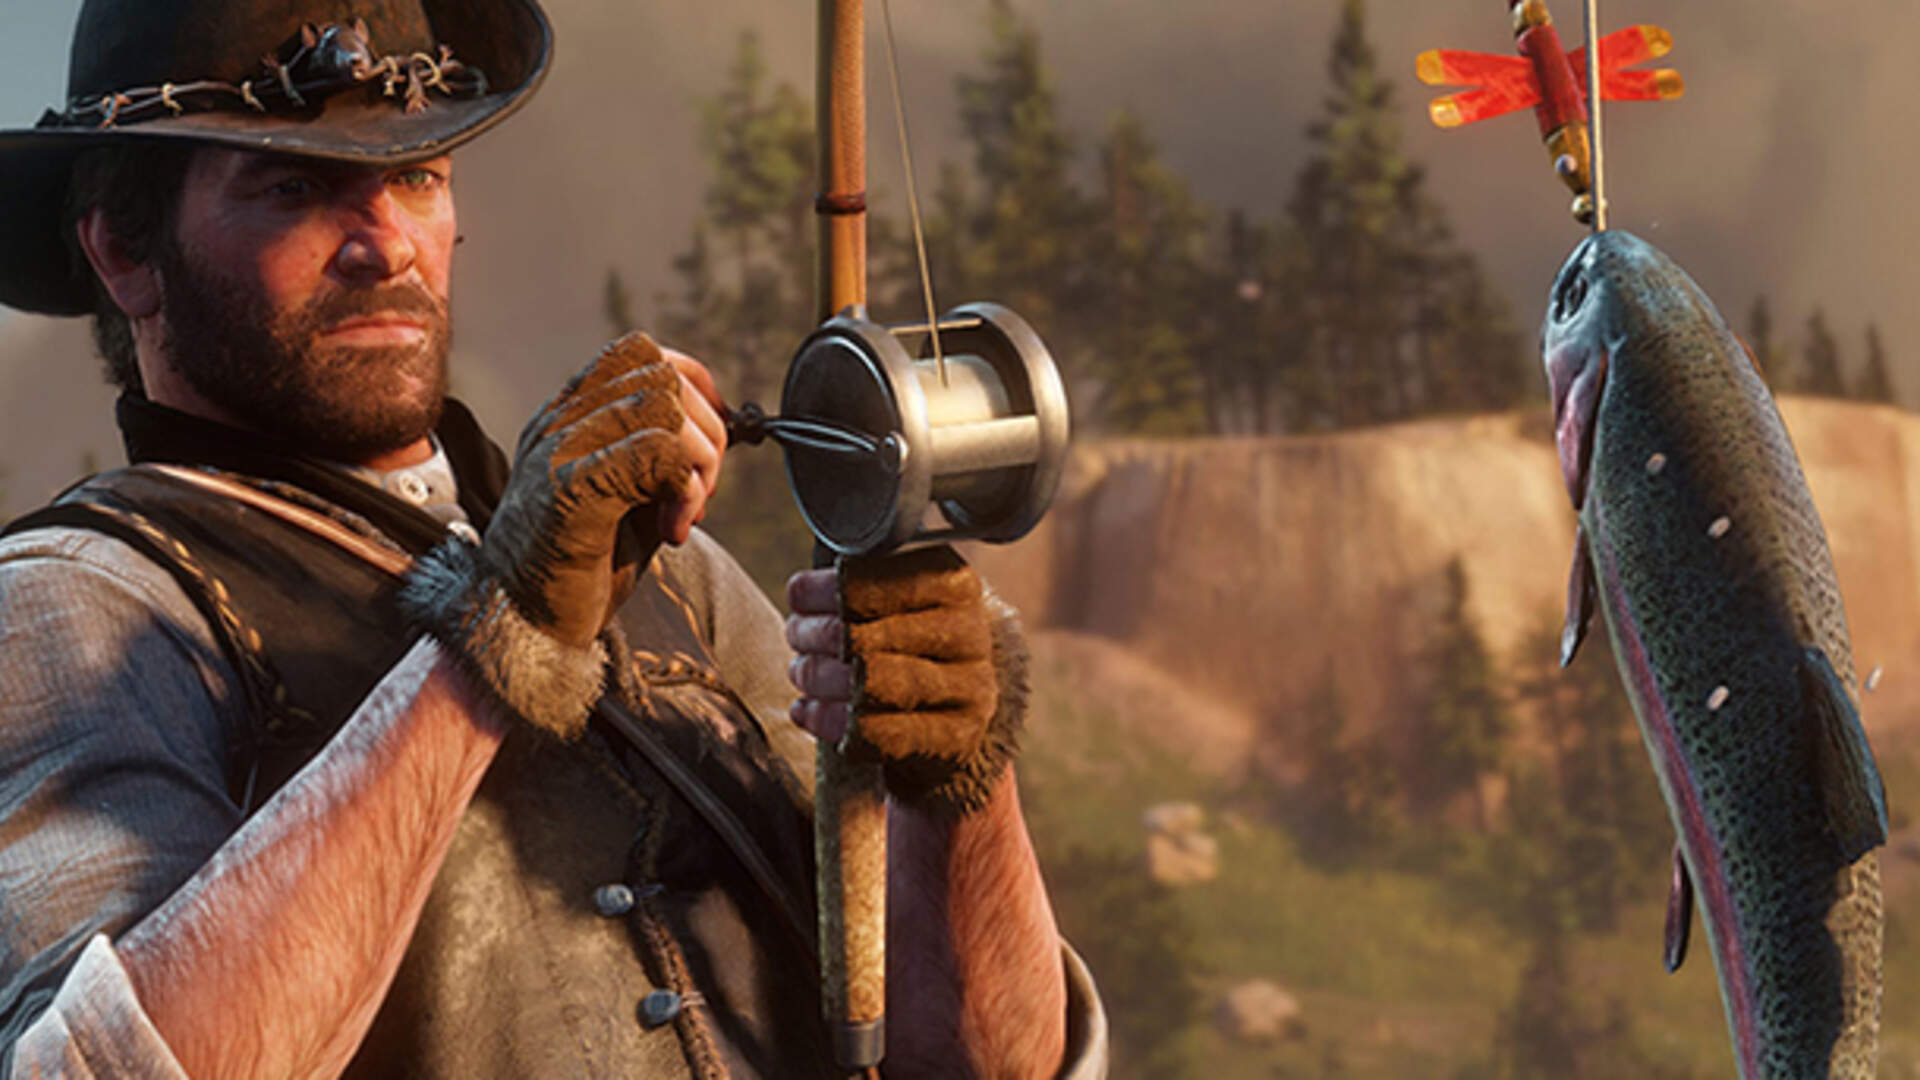 Red Dead Redemption 2 Datamine Shows You Might Be Able to Buy a House in Red Dead Online